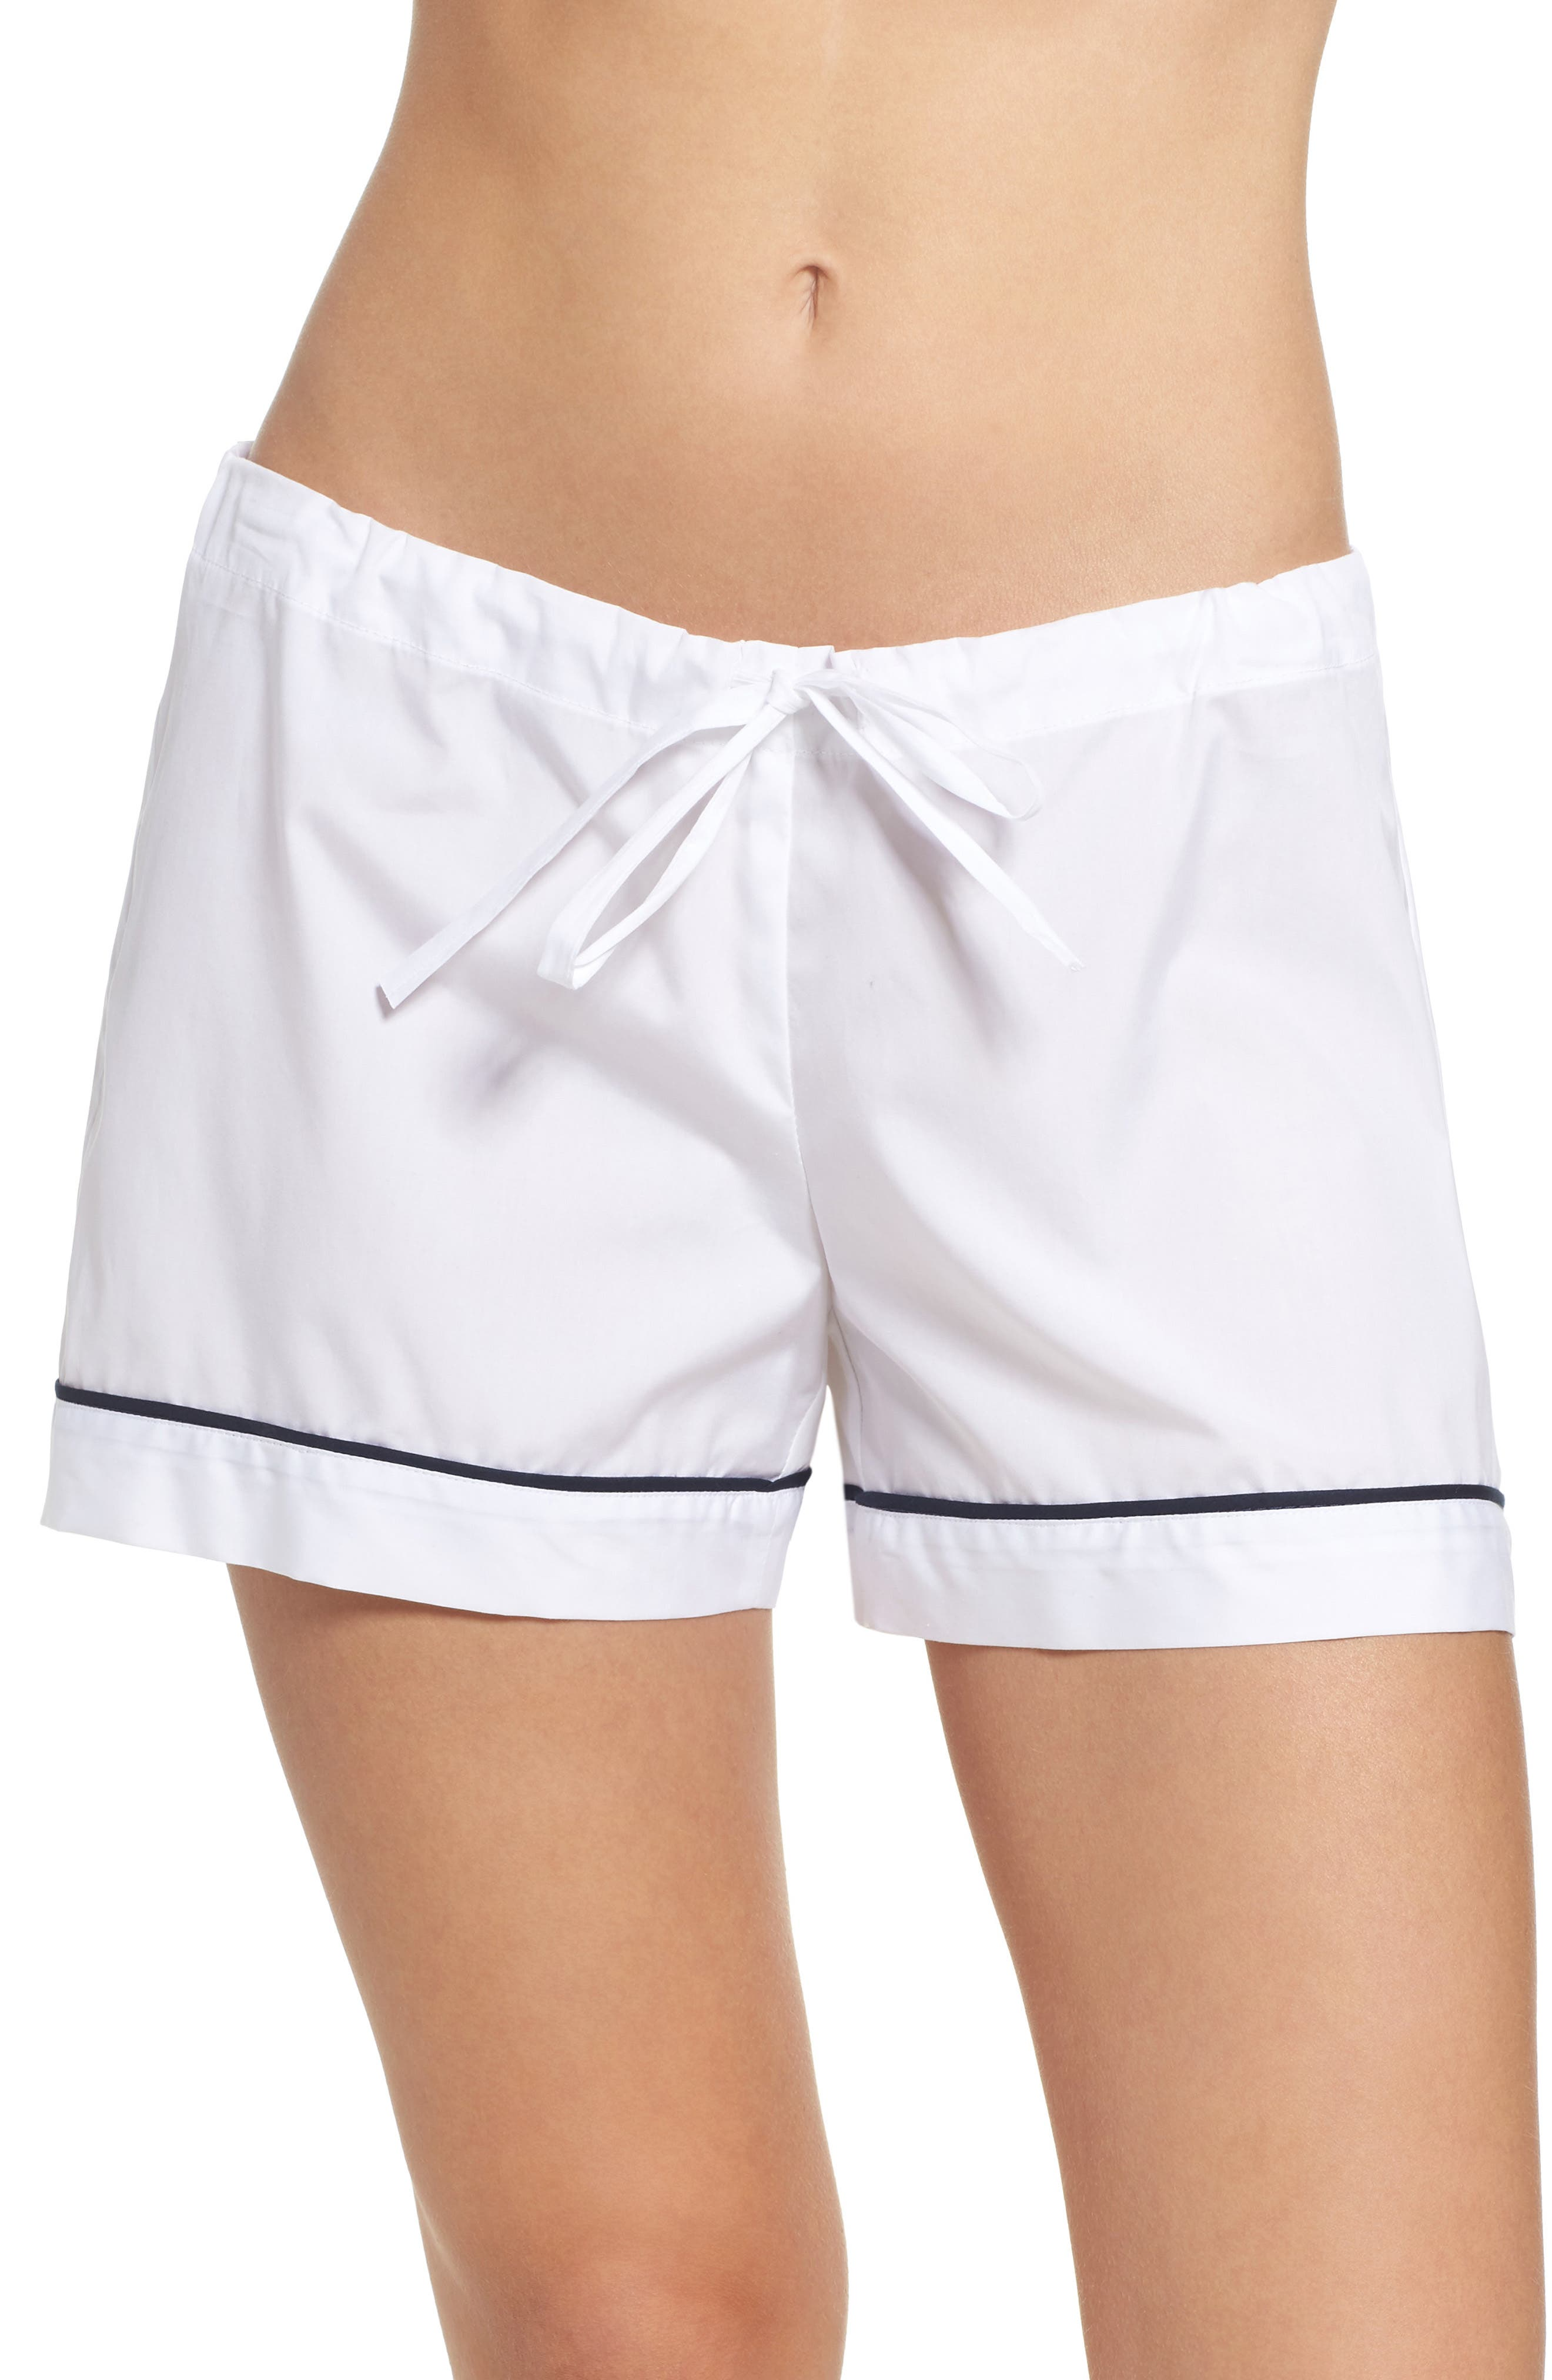 Piped Pajama Shorts,                         Main,                         color, White With Navy Piping